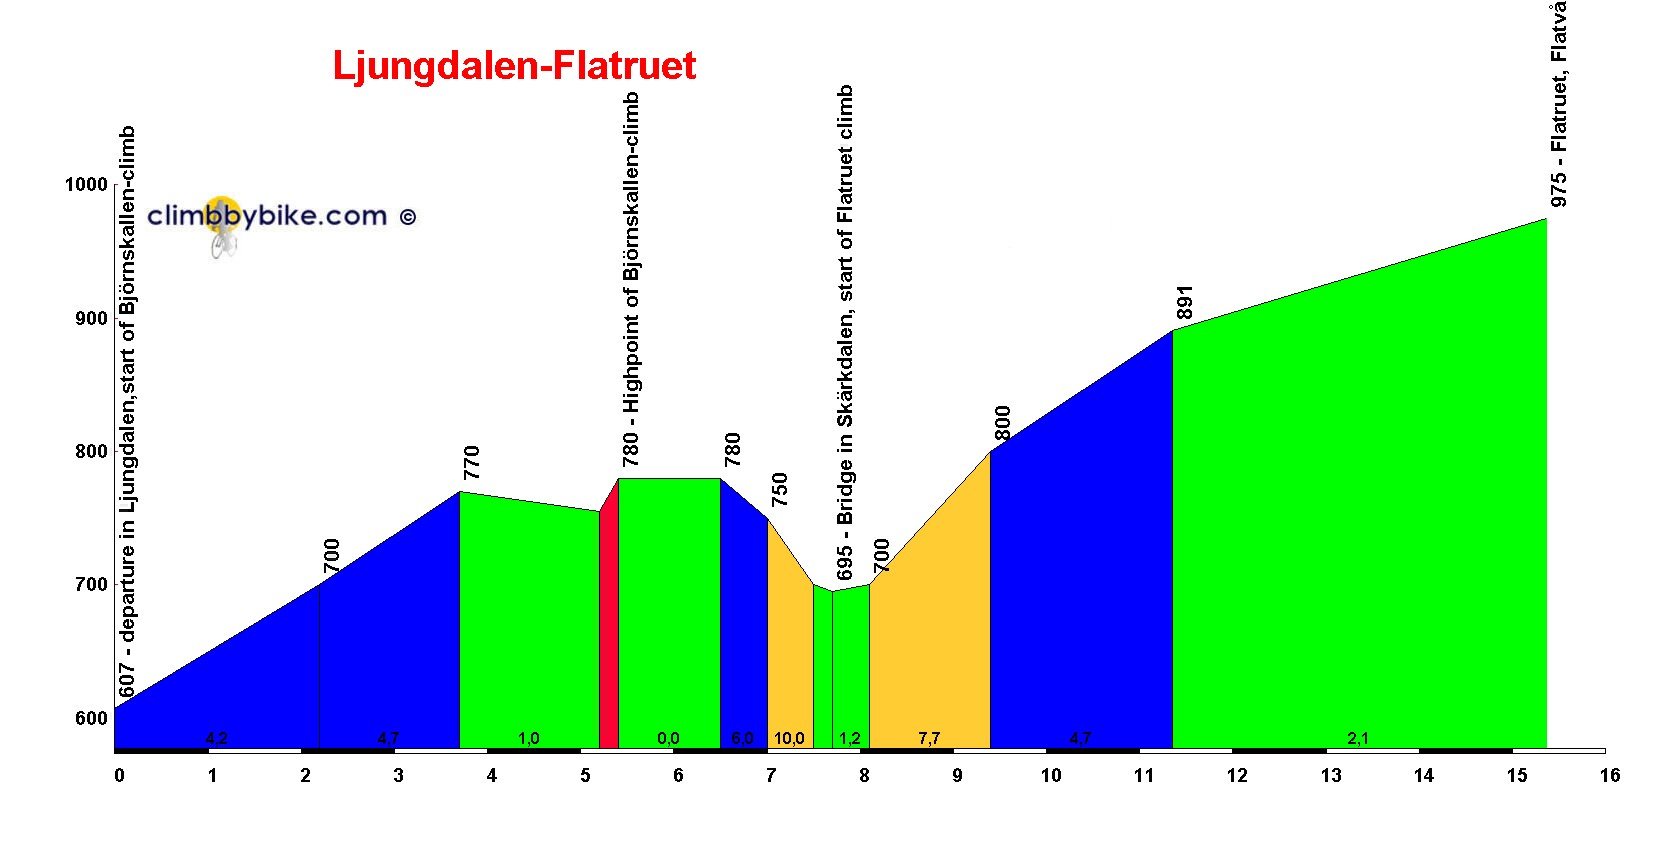 Elevation profile for Ljungdalen-Flatruet